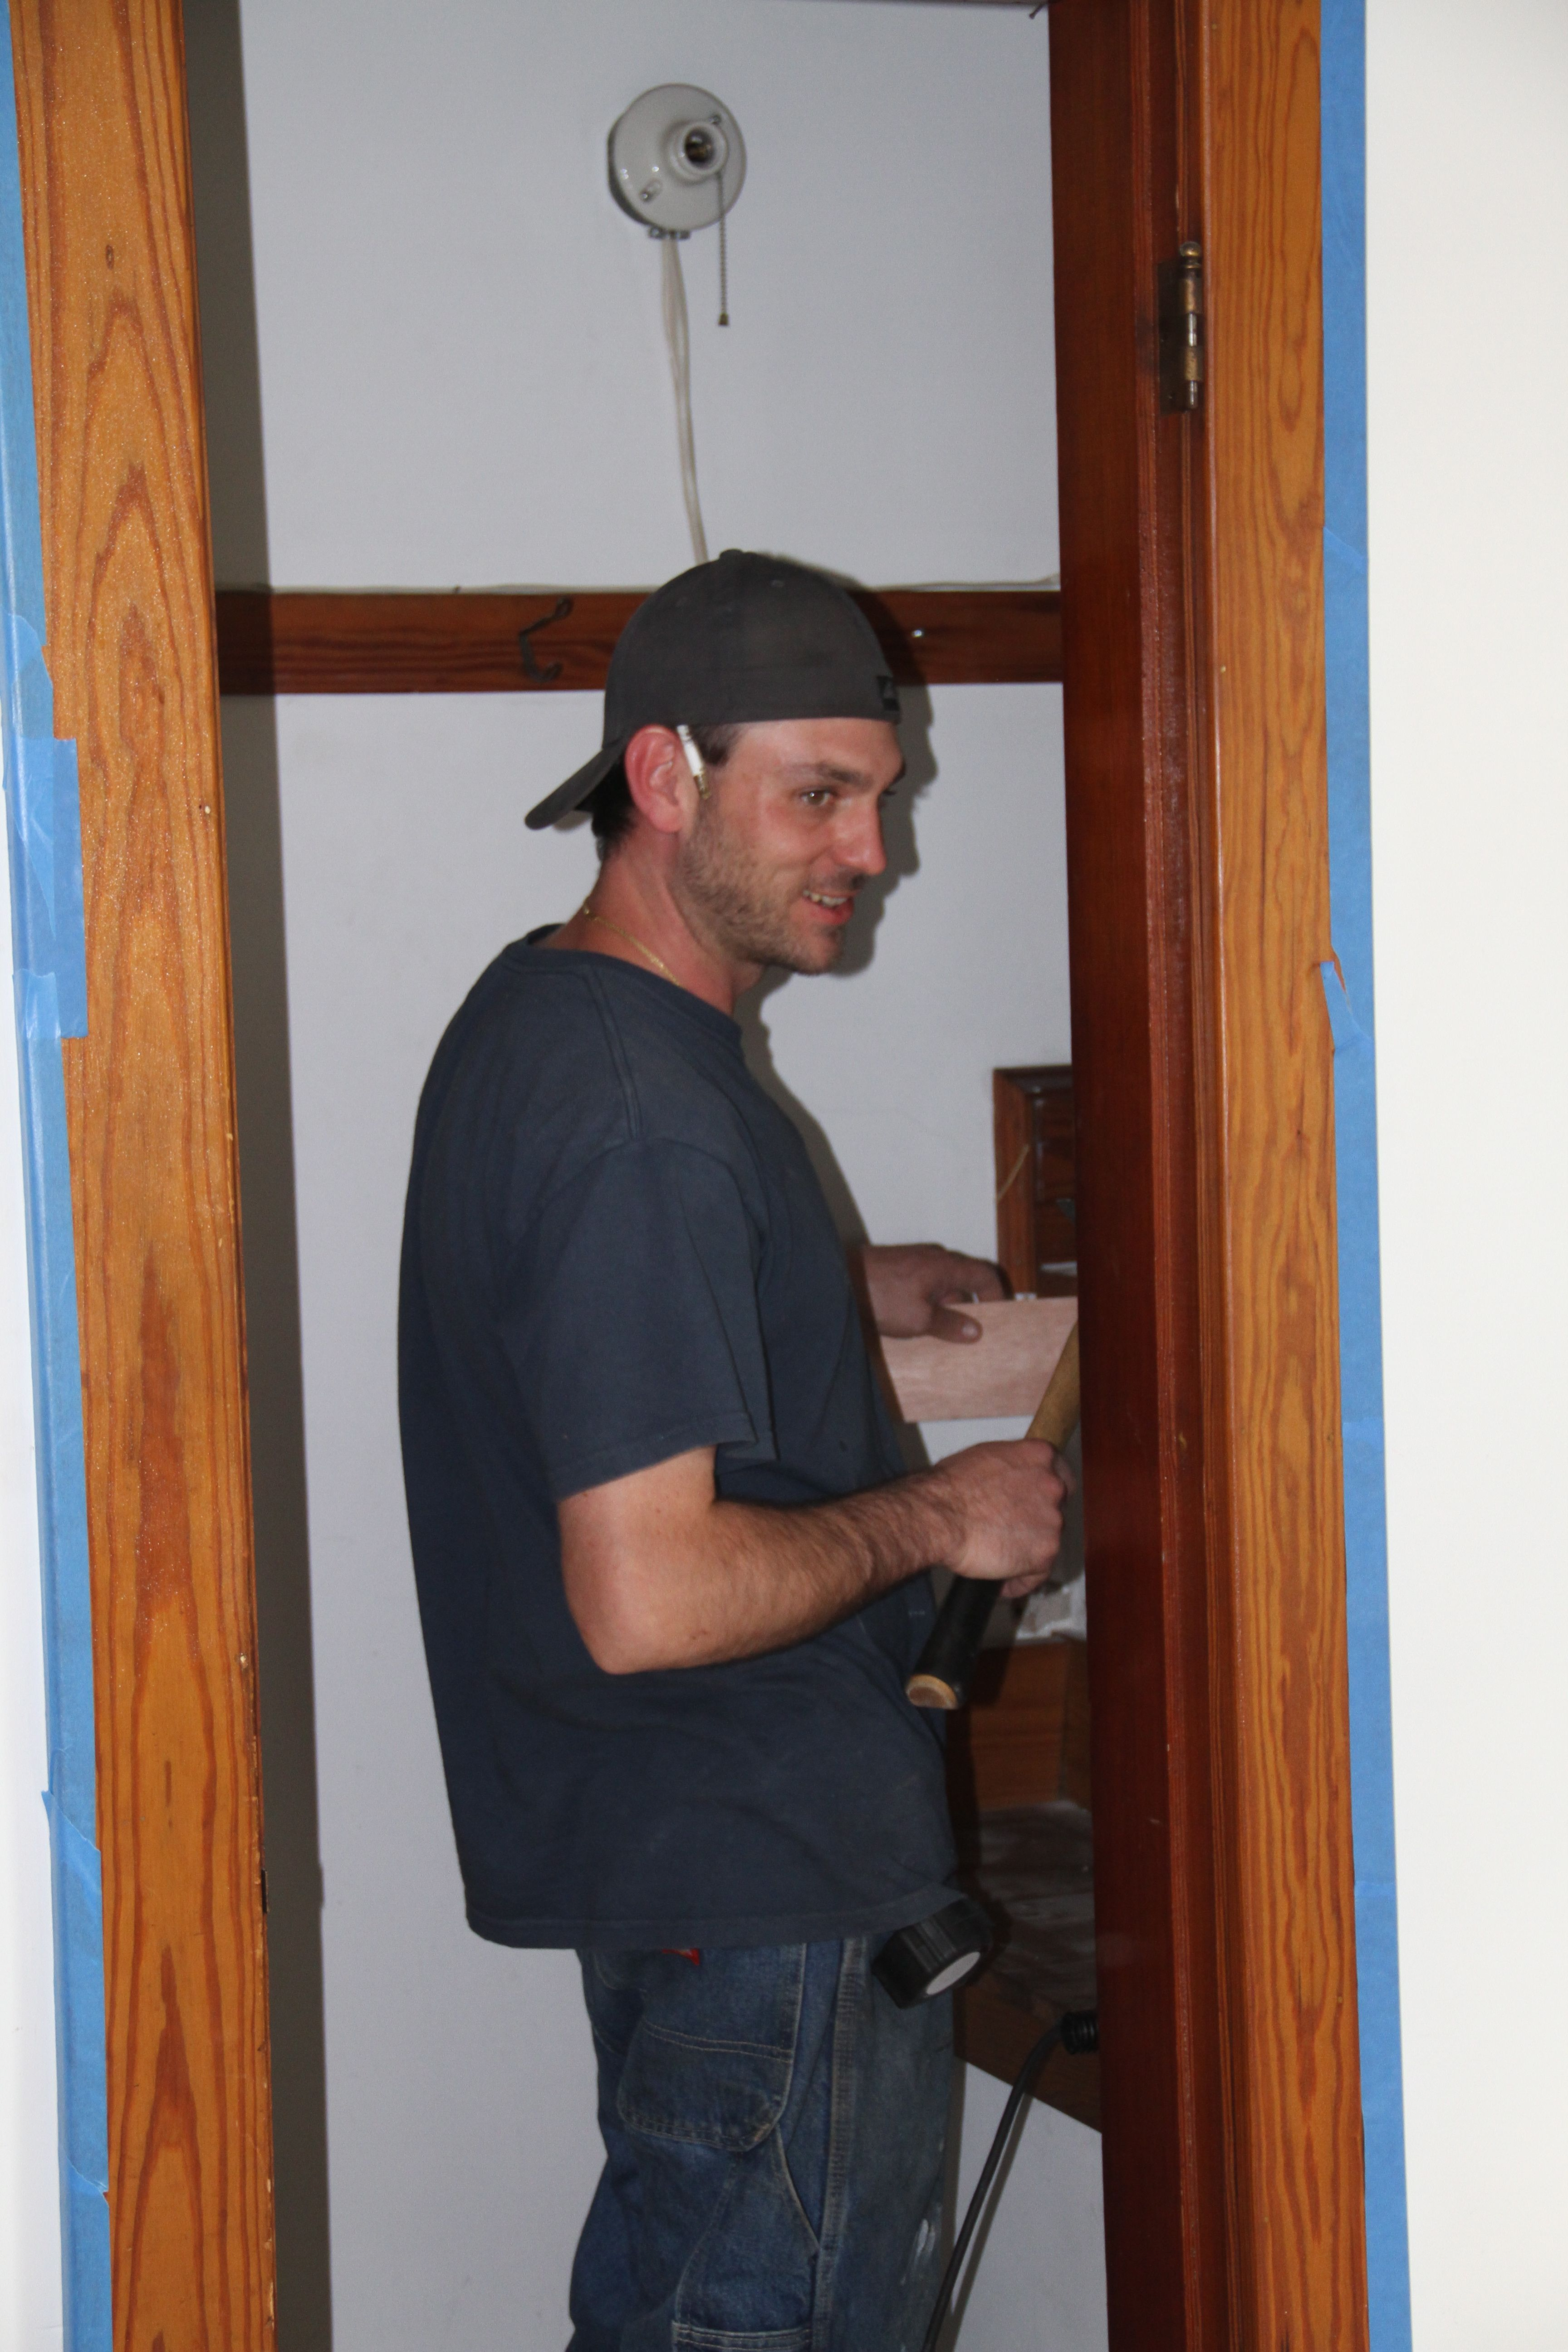 Jonas, in a rare smiling shot, poaching some wood from the closet for a minor adjustment in the kitchen.